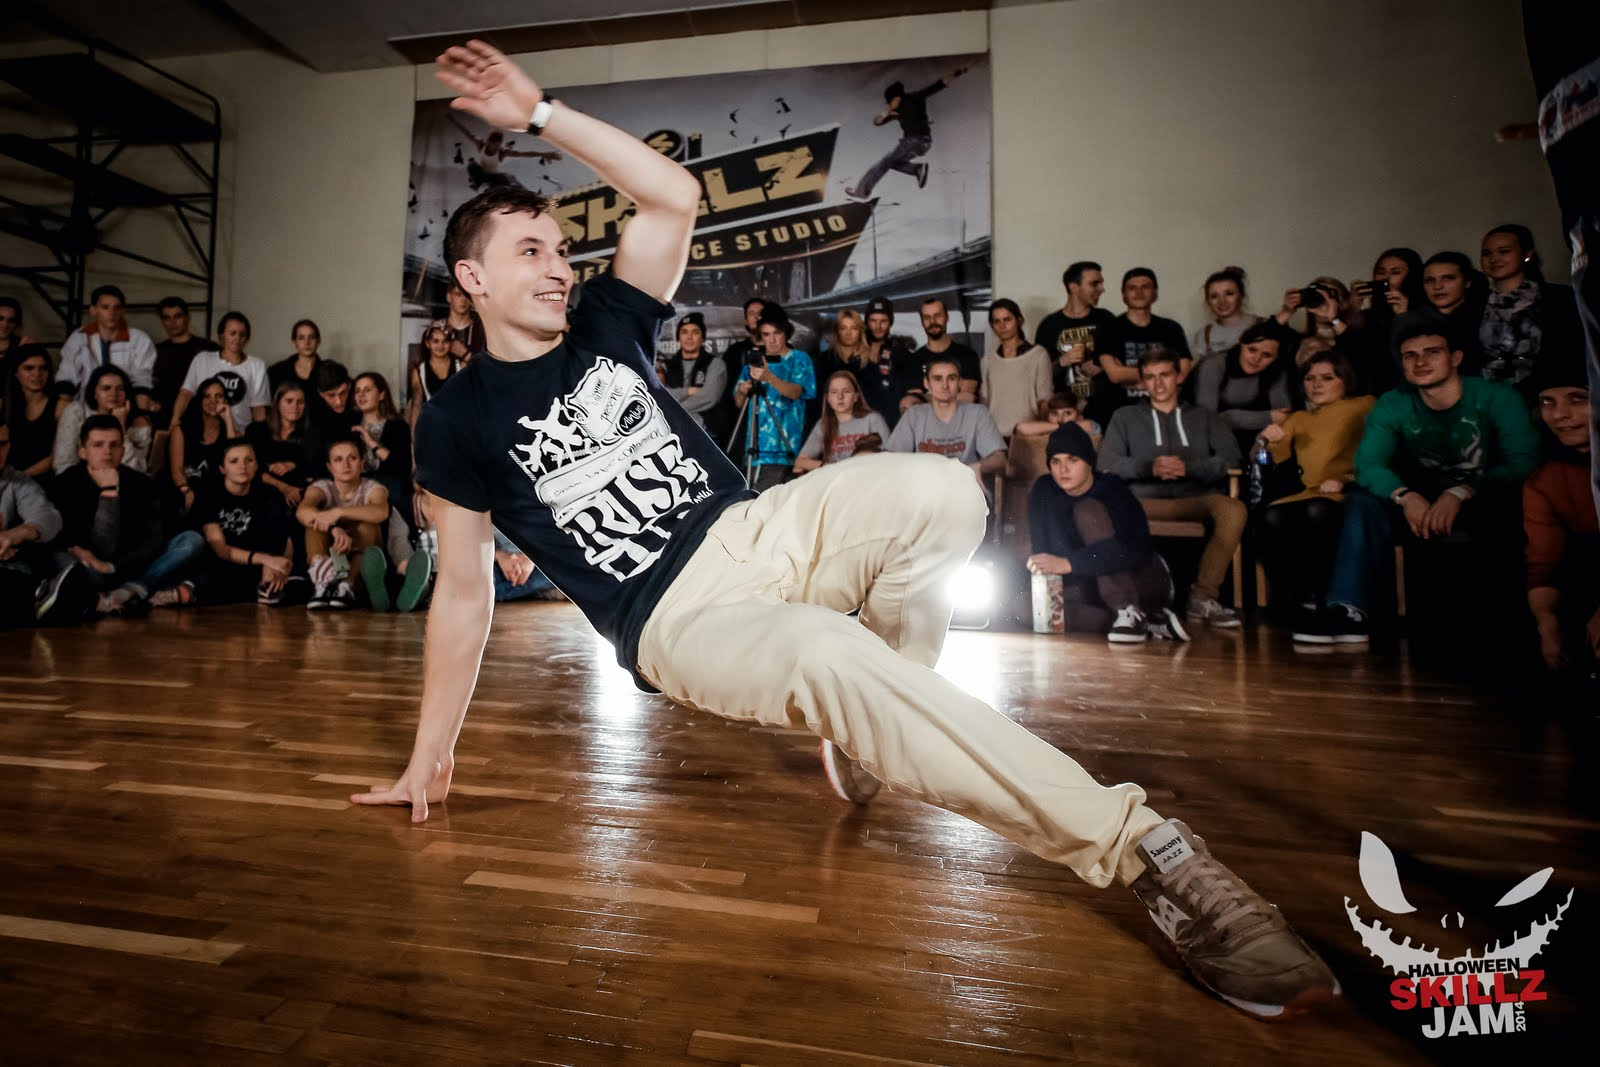 SKILLZ Halloween Jam Battles - a_MG_2550.jpg